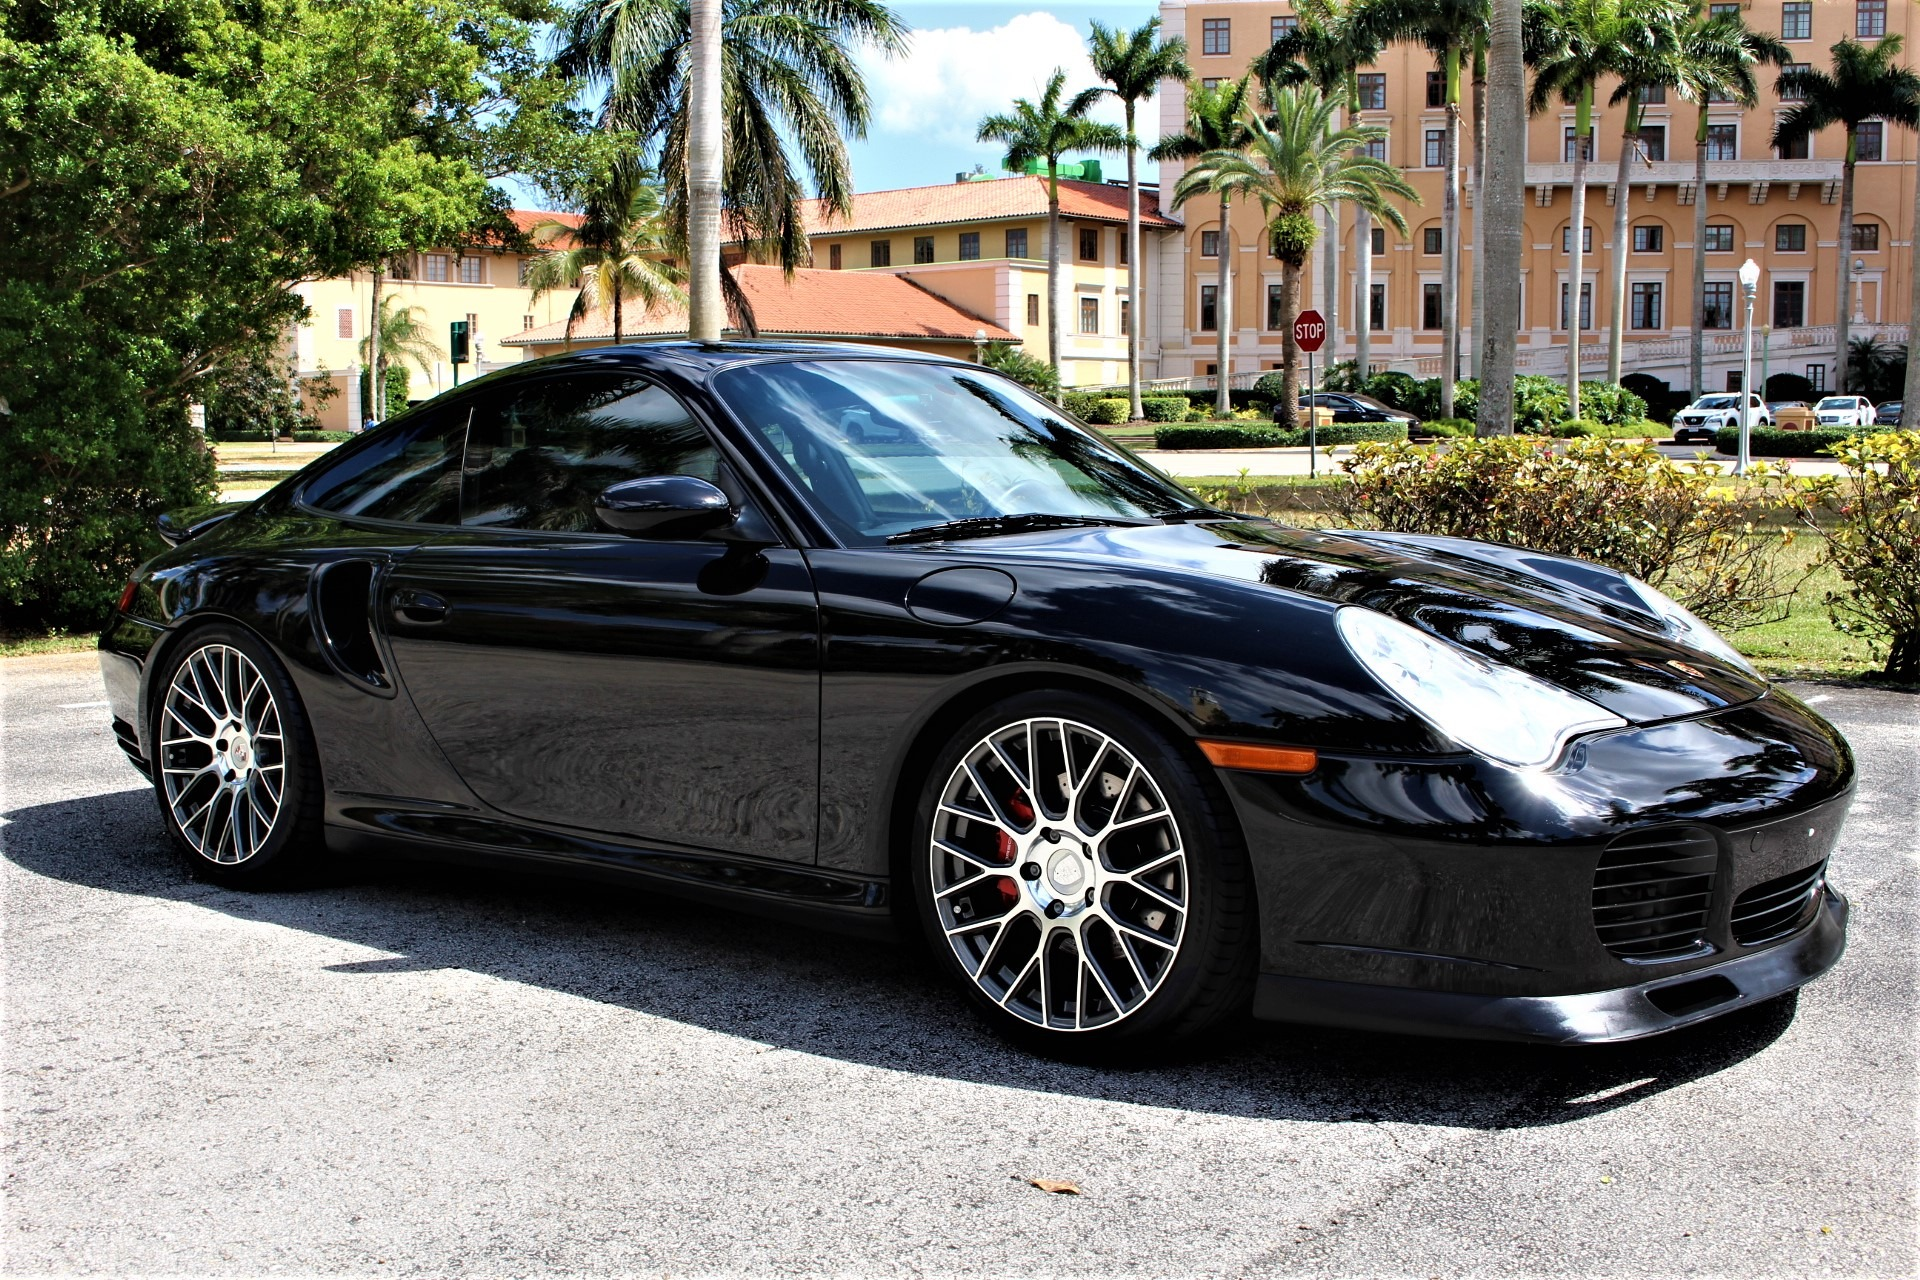 Used 2002 Porsche 911 Turbo for sale $72,850 at The Gables Sports Cars in Miami FL 33146 2